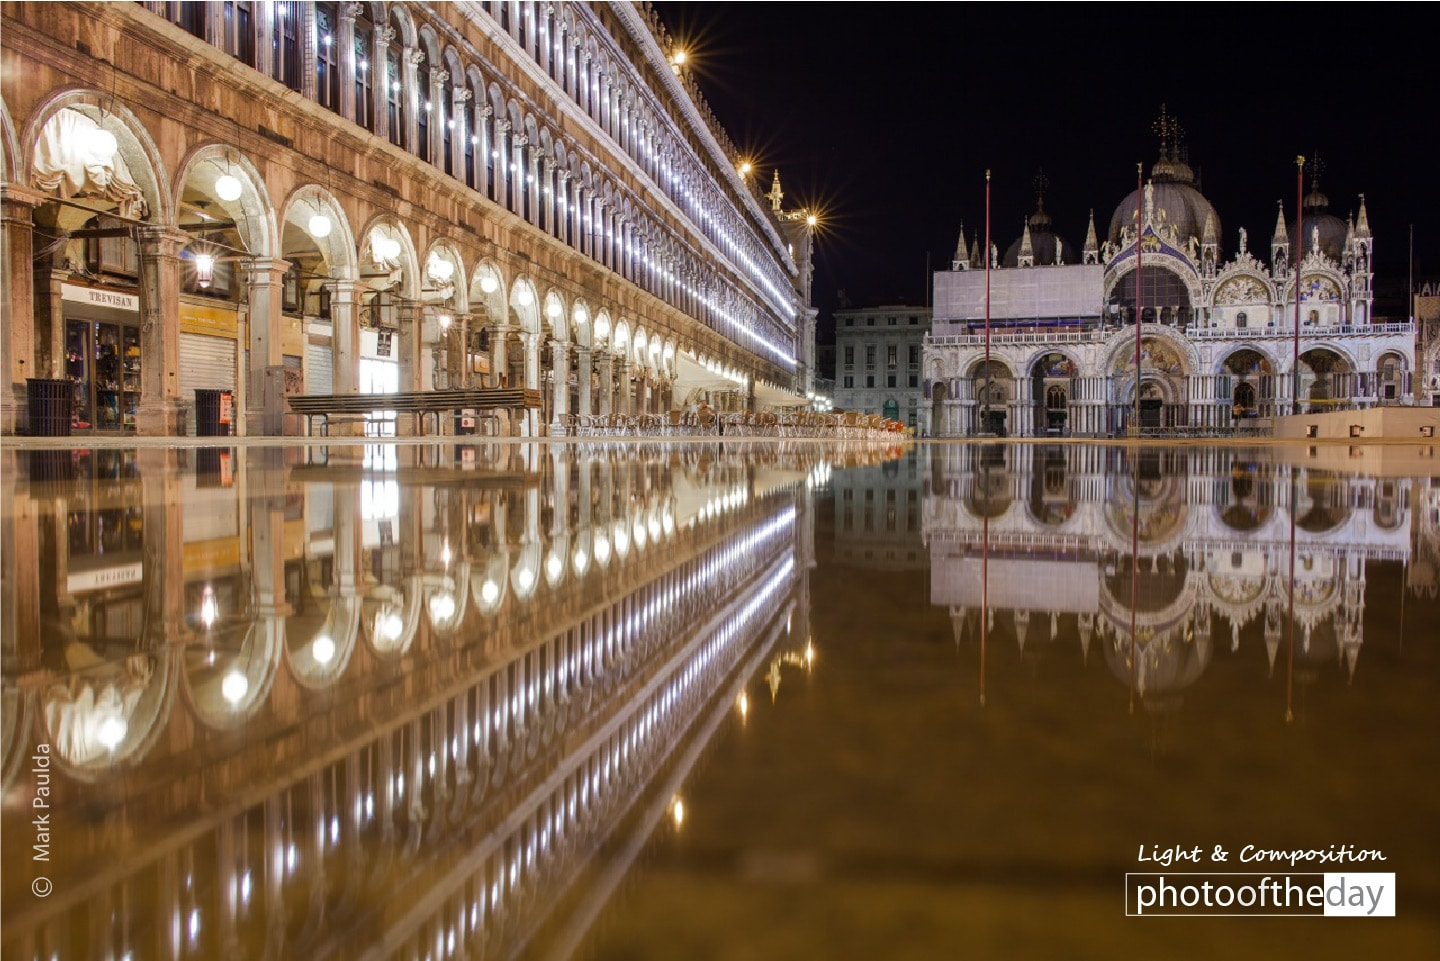 Reflections in the Piazza, by Mark Paulda